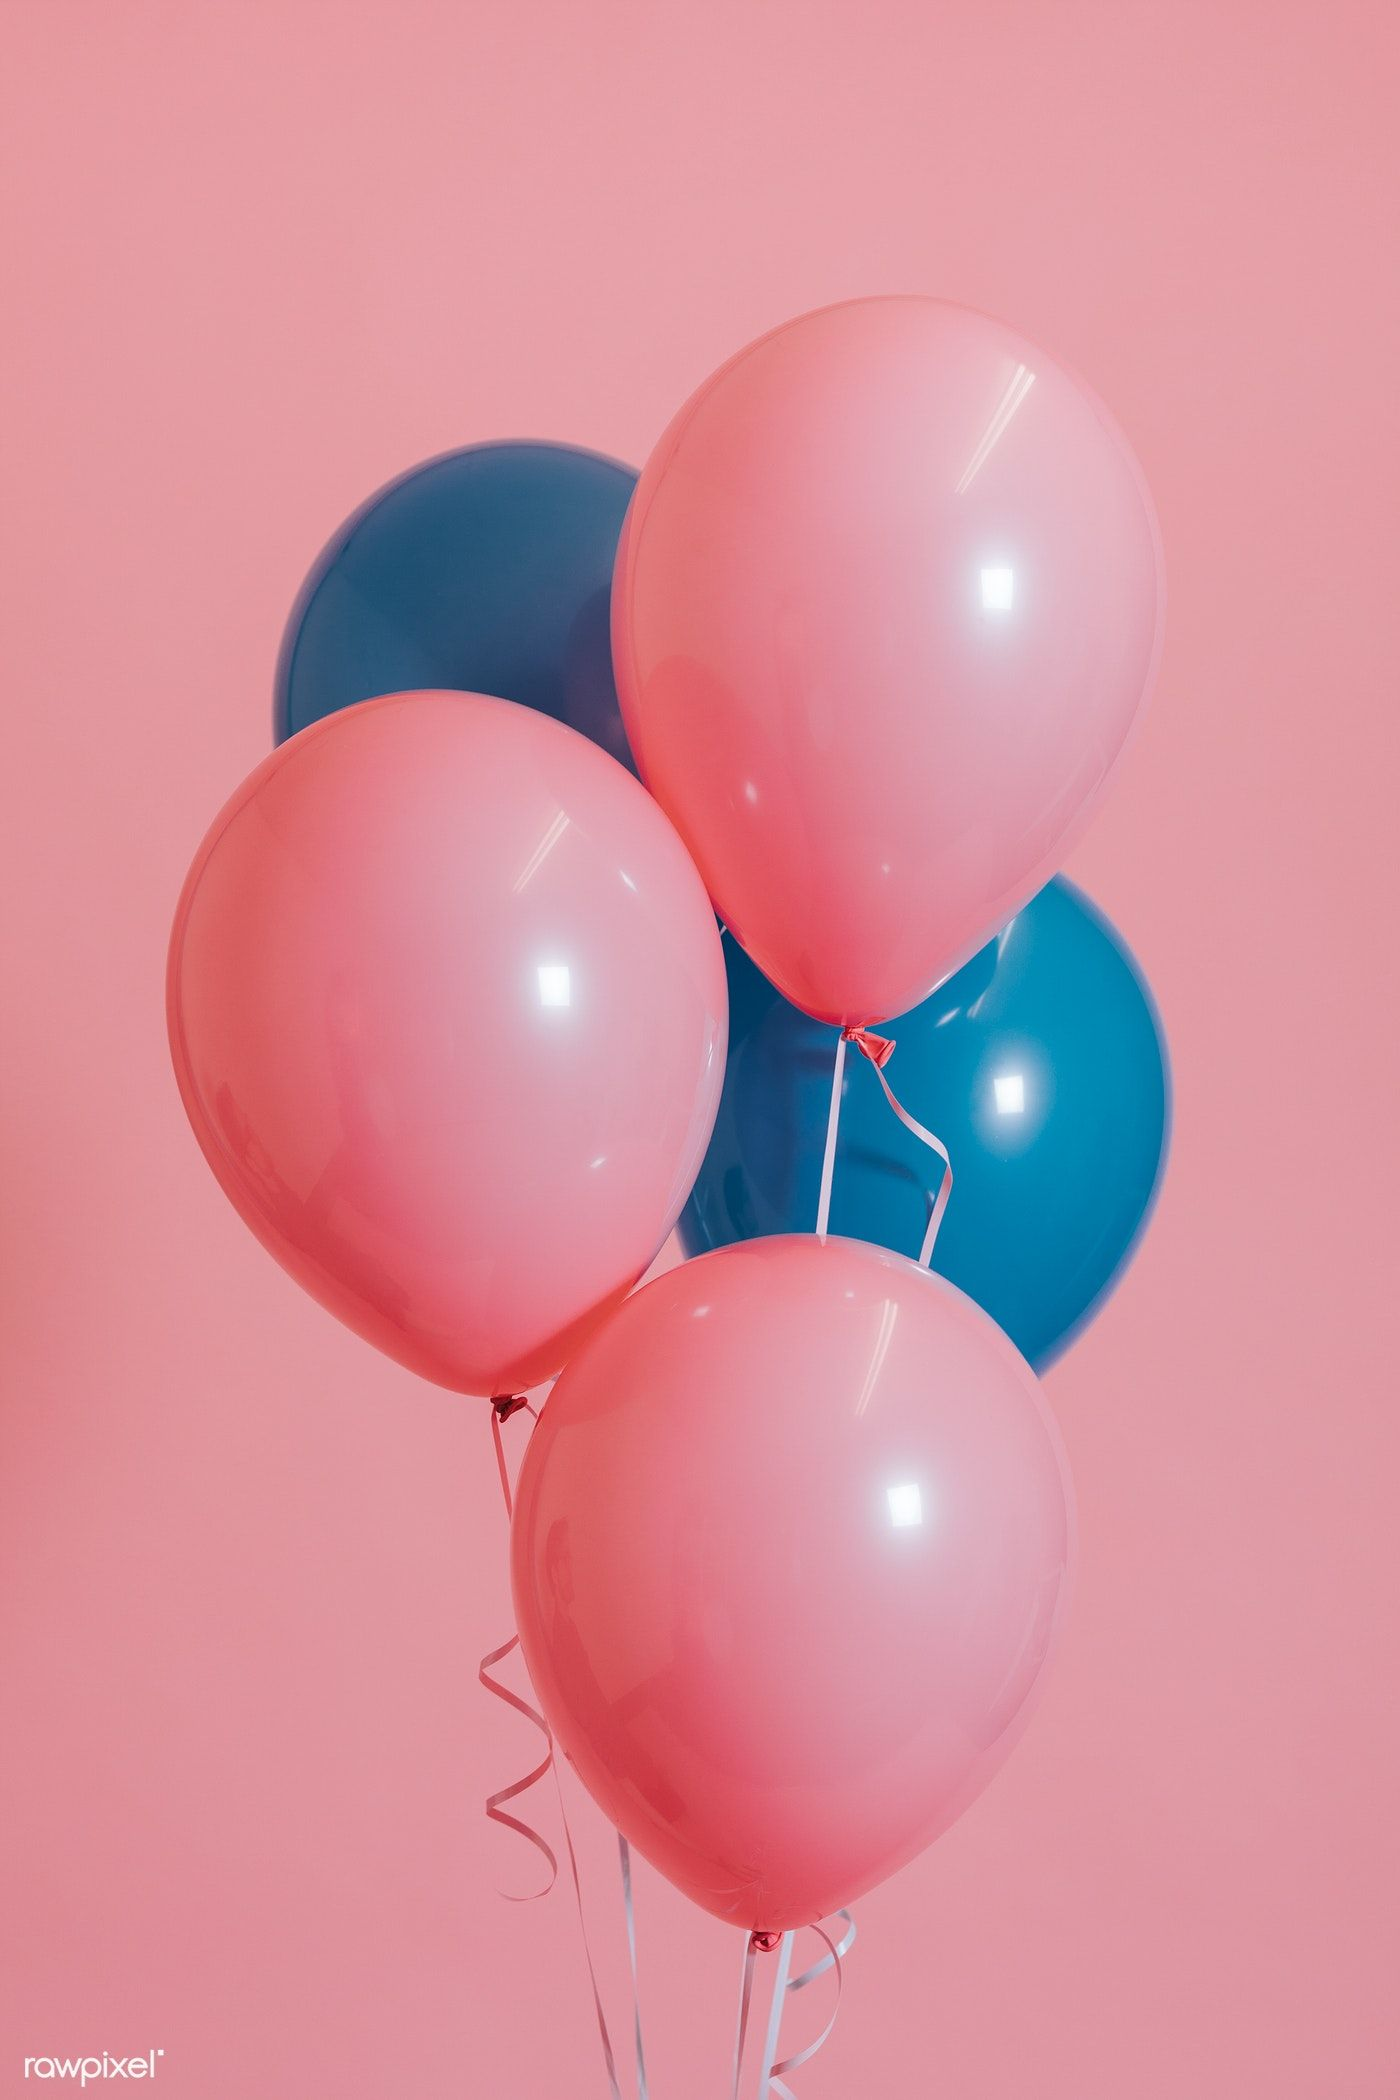 Pink And Blue Balloons For A Birthday Party Premium Image By Rawpixel Com Felix Blue Balloons Images For Valentines Day Balloons